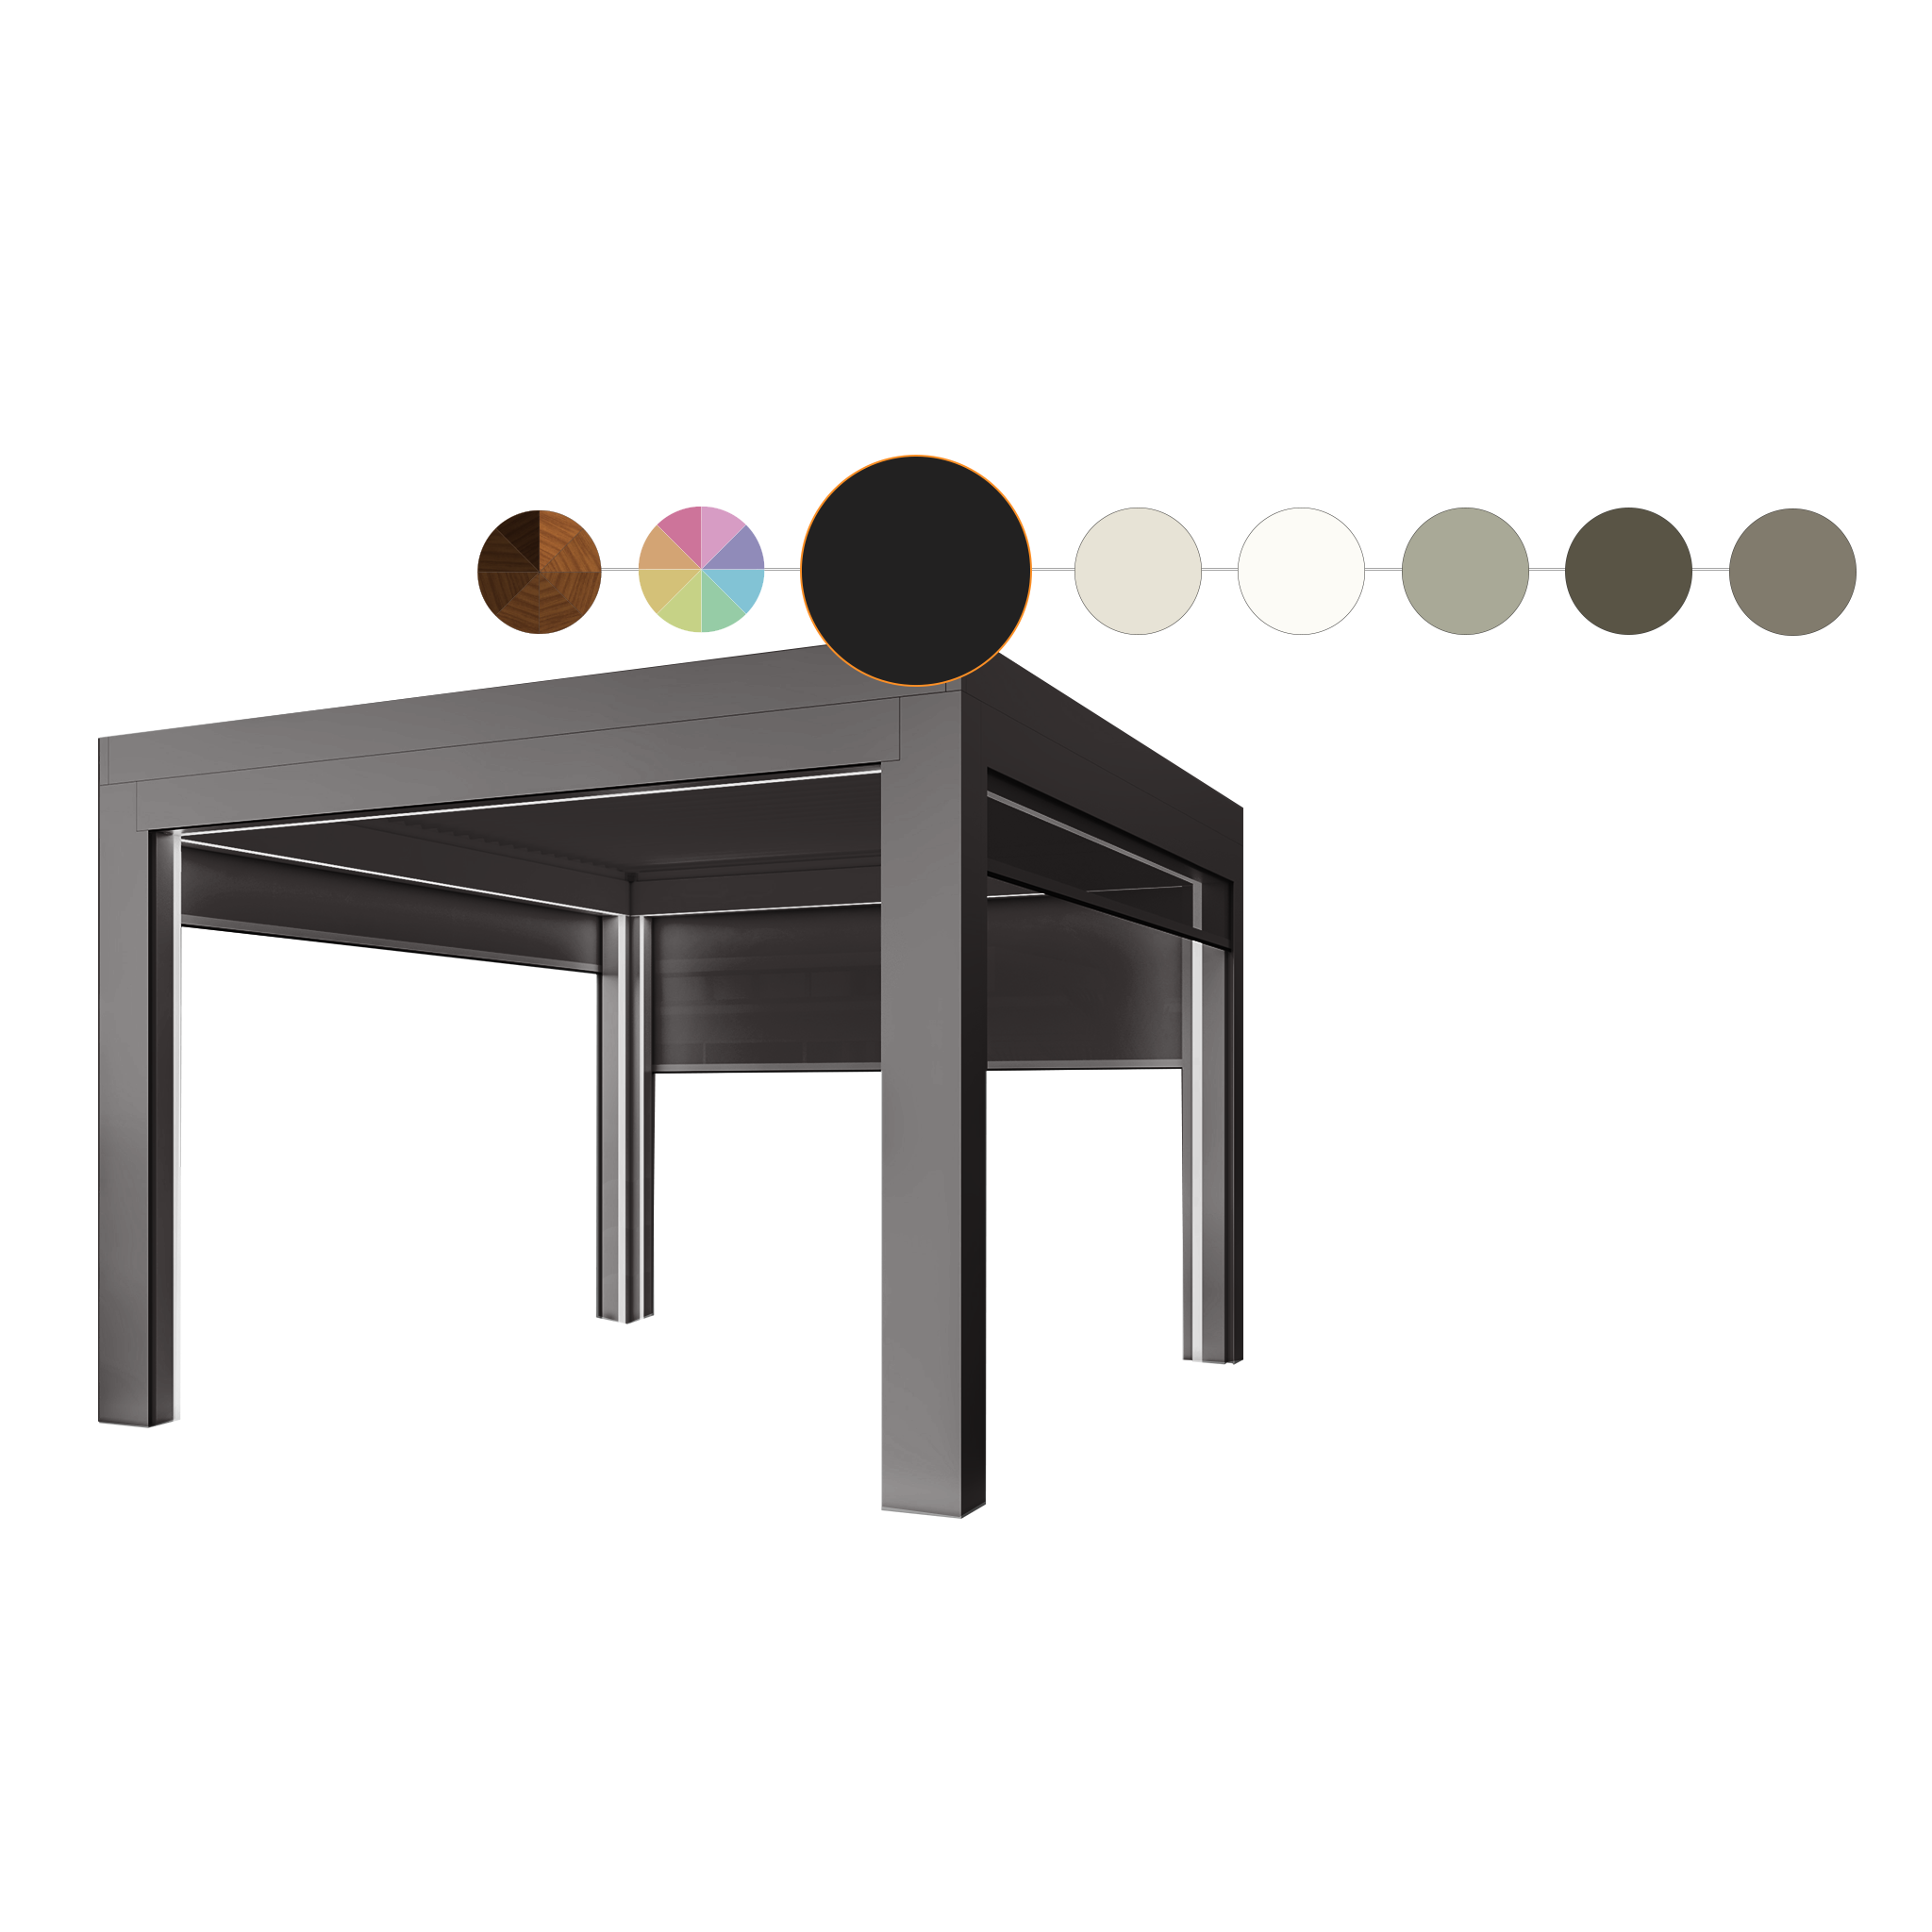 pergola with color options